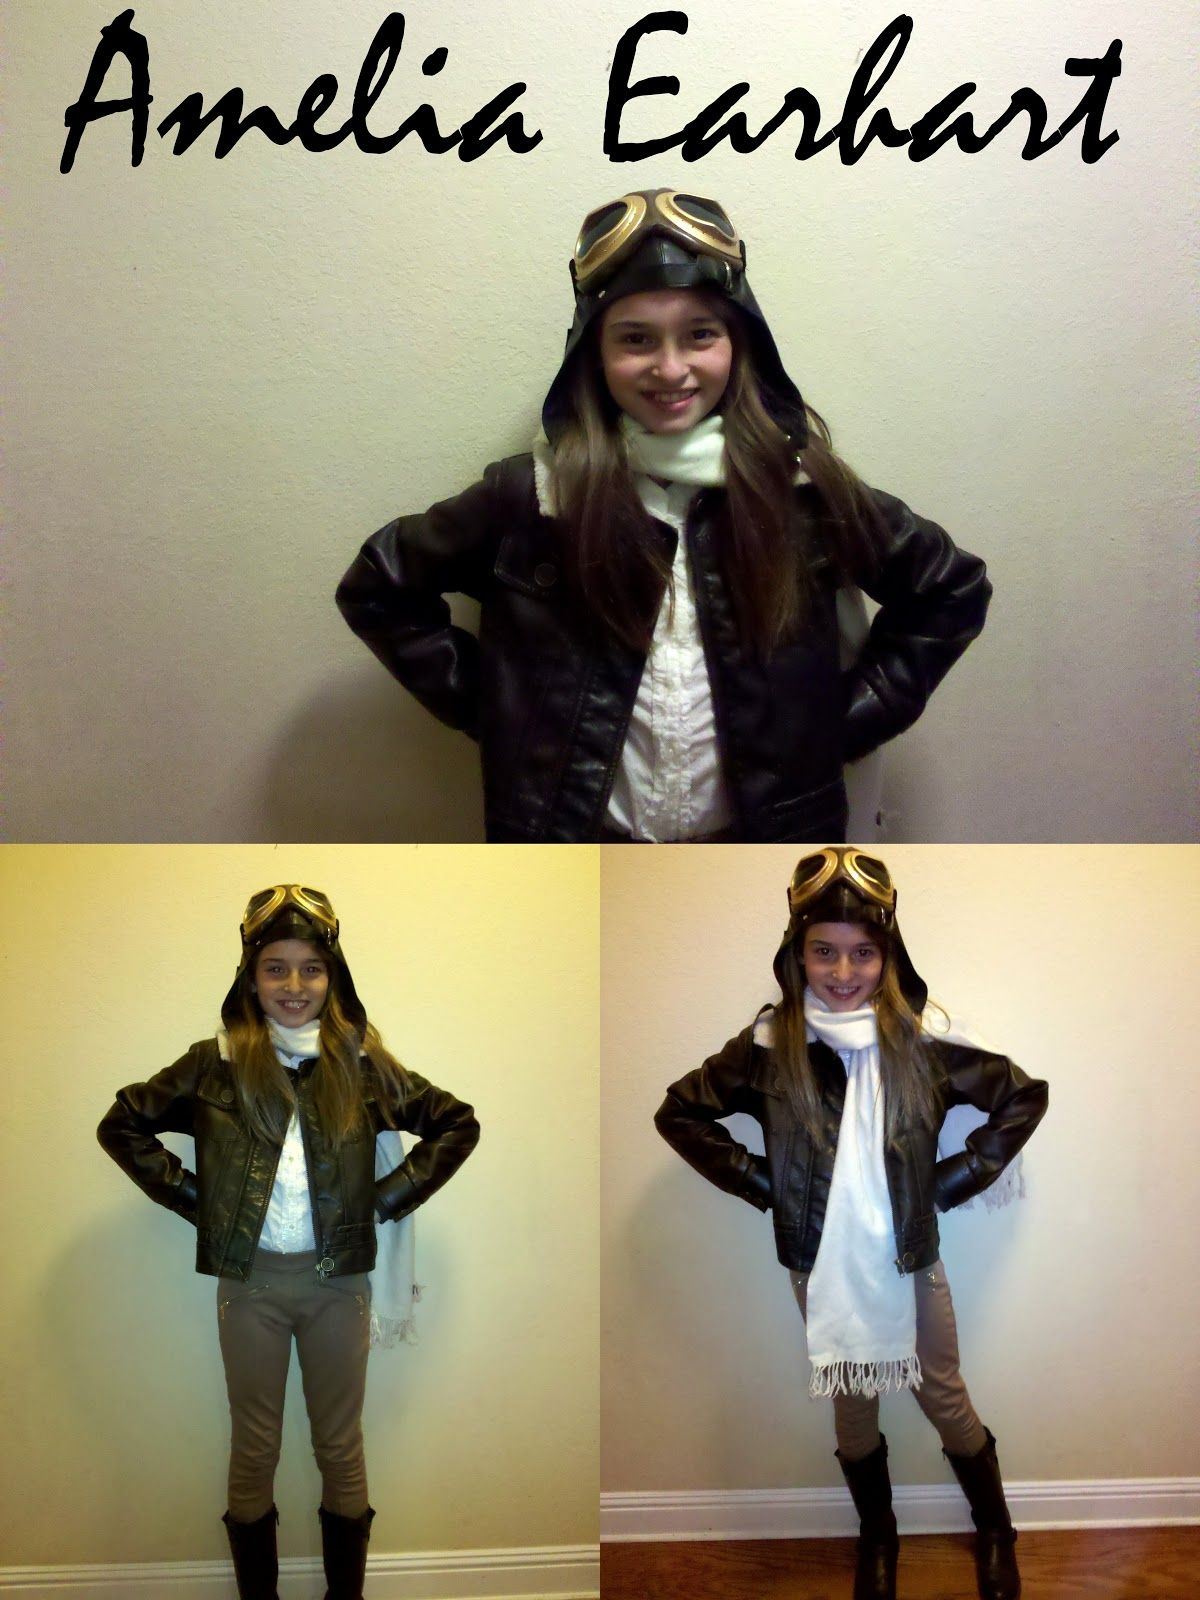 Desert Girls Vintage October 2012 Amelia Earhart Costume Kids Amelia Earhart Costume Famous Women